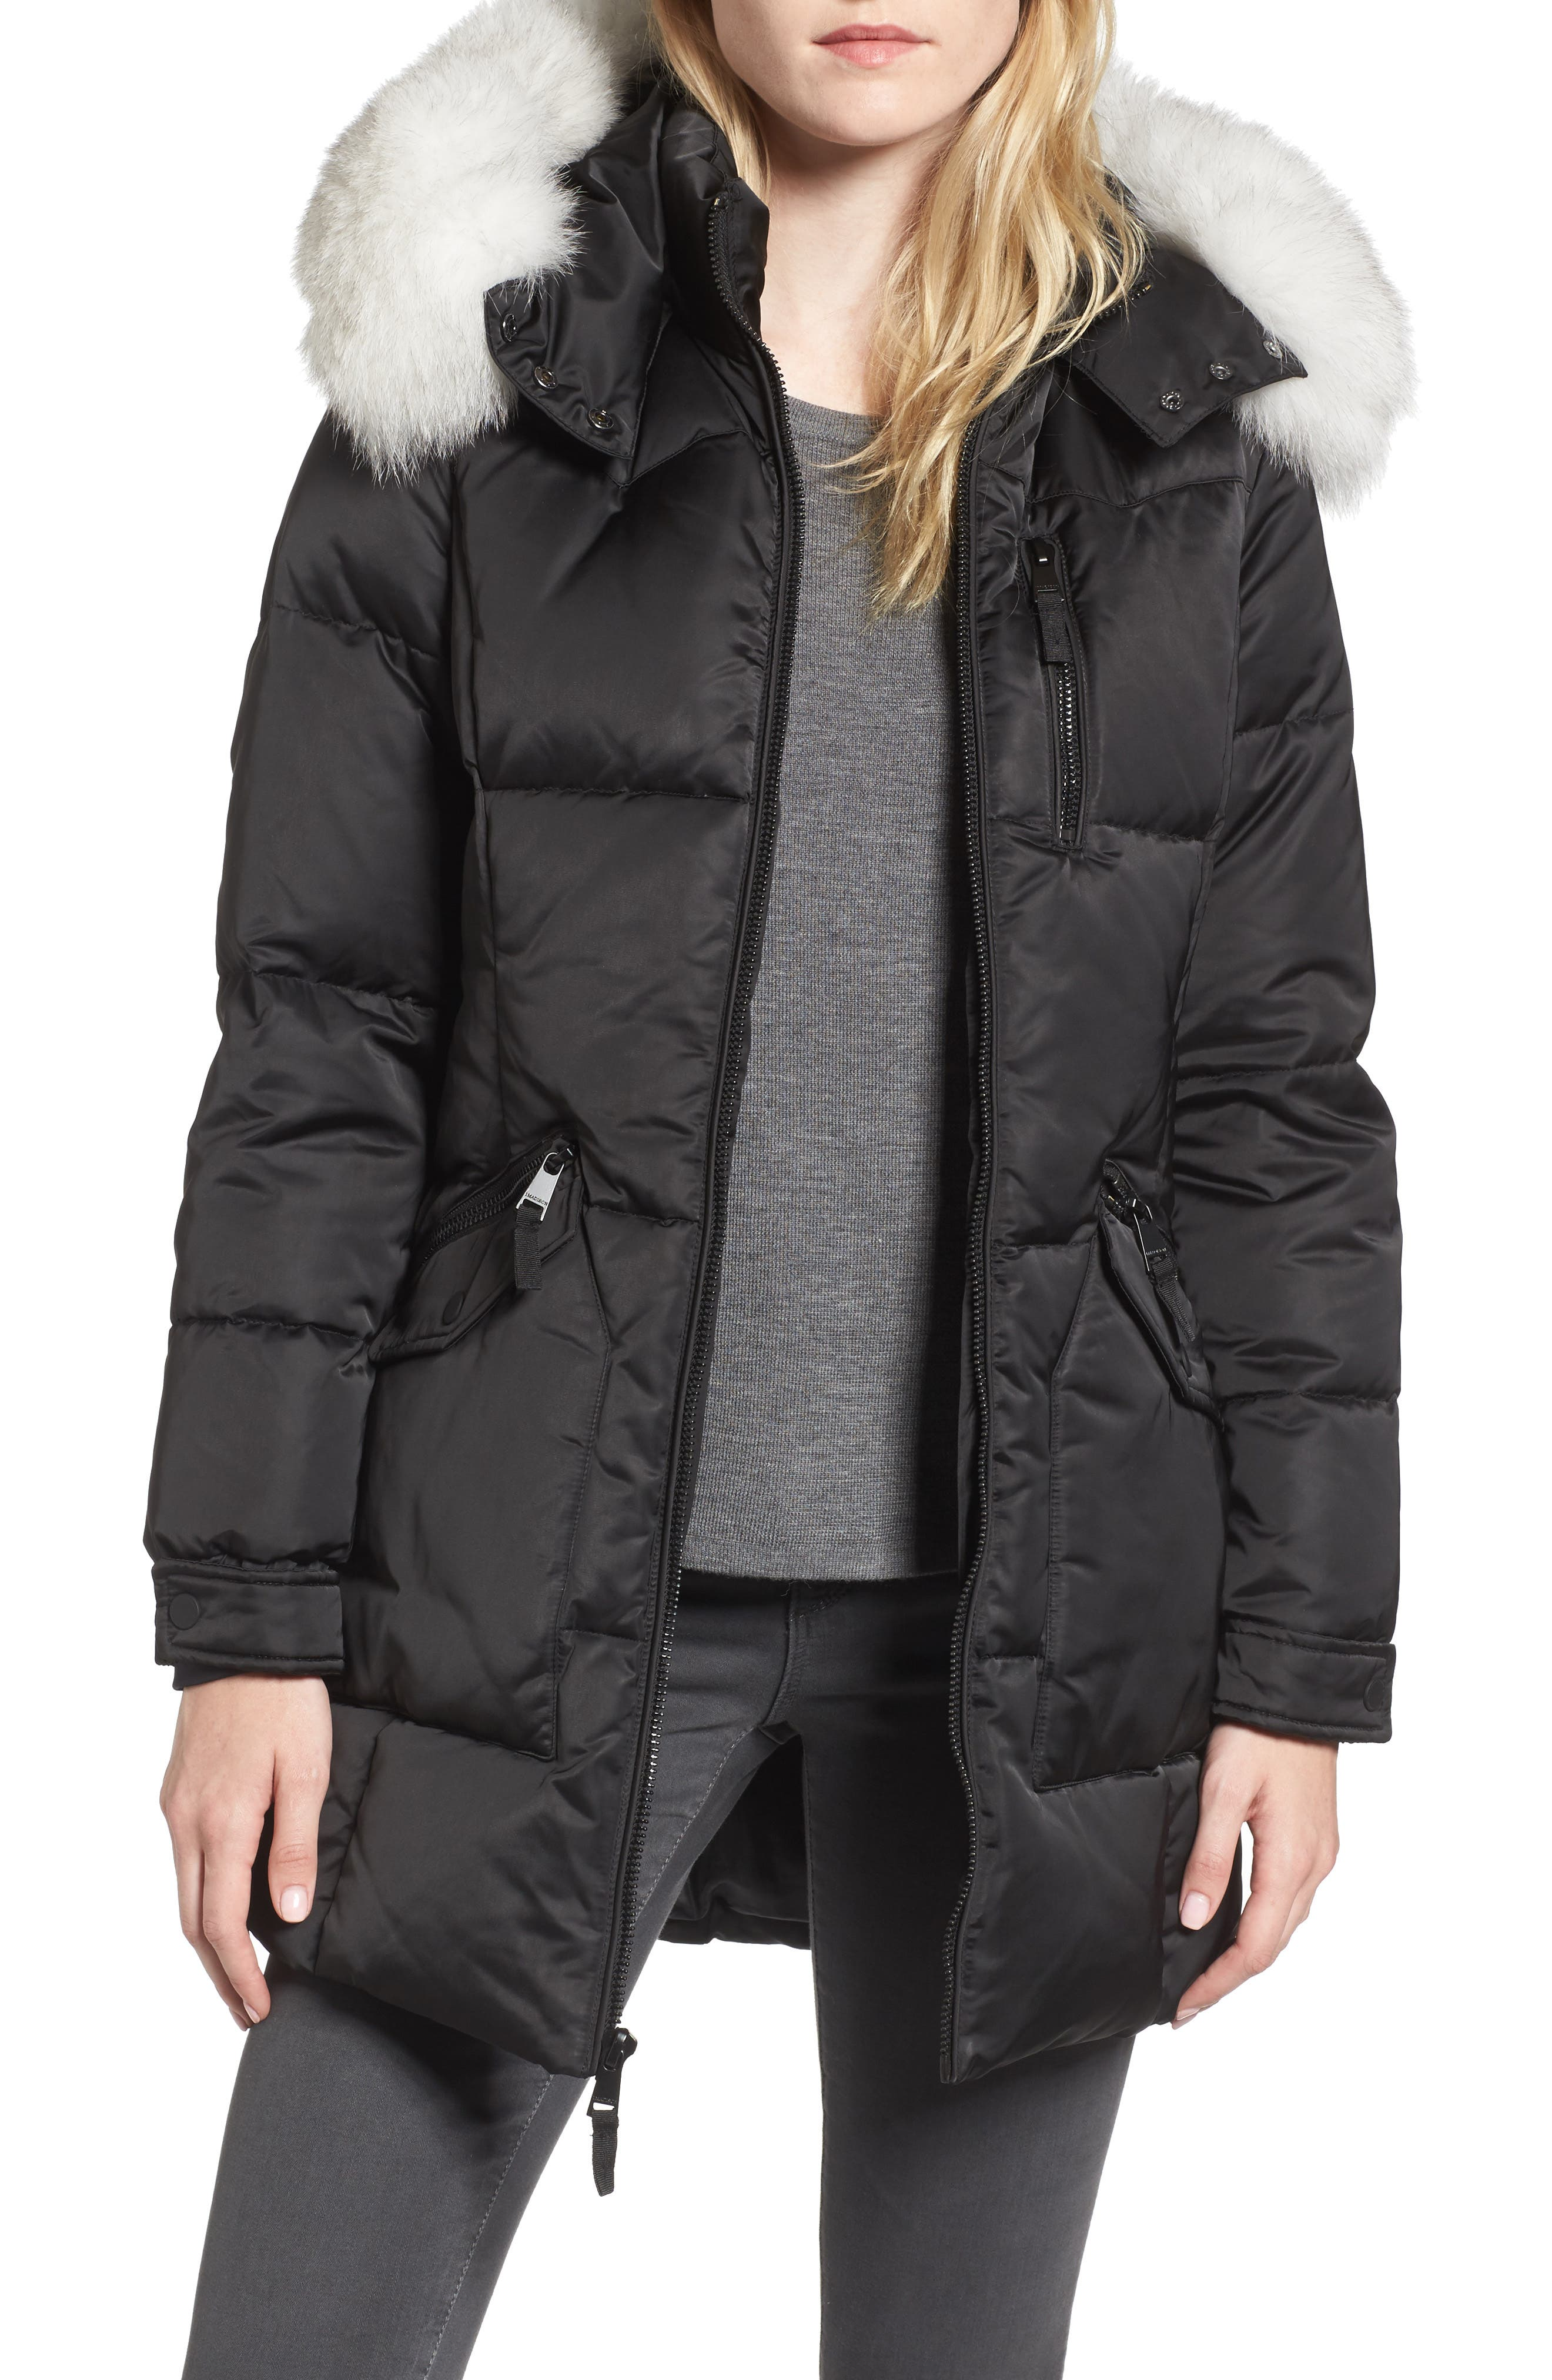 Main Image - 1 Madison Puffer Jacket with Genuine Fox Fur Trim